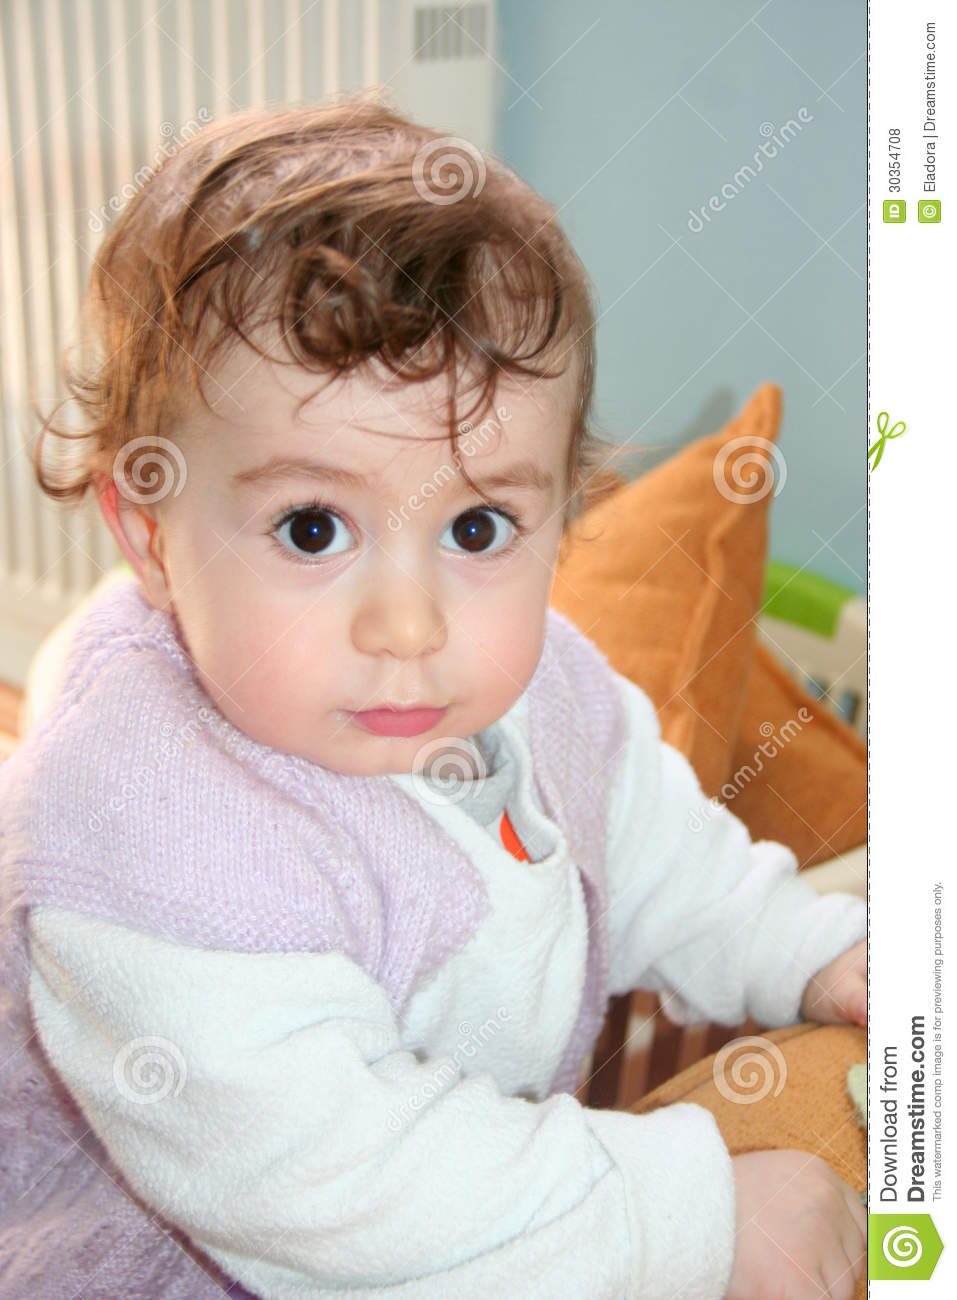 portrait of cute baby - photo #21